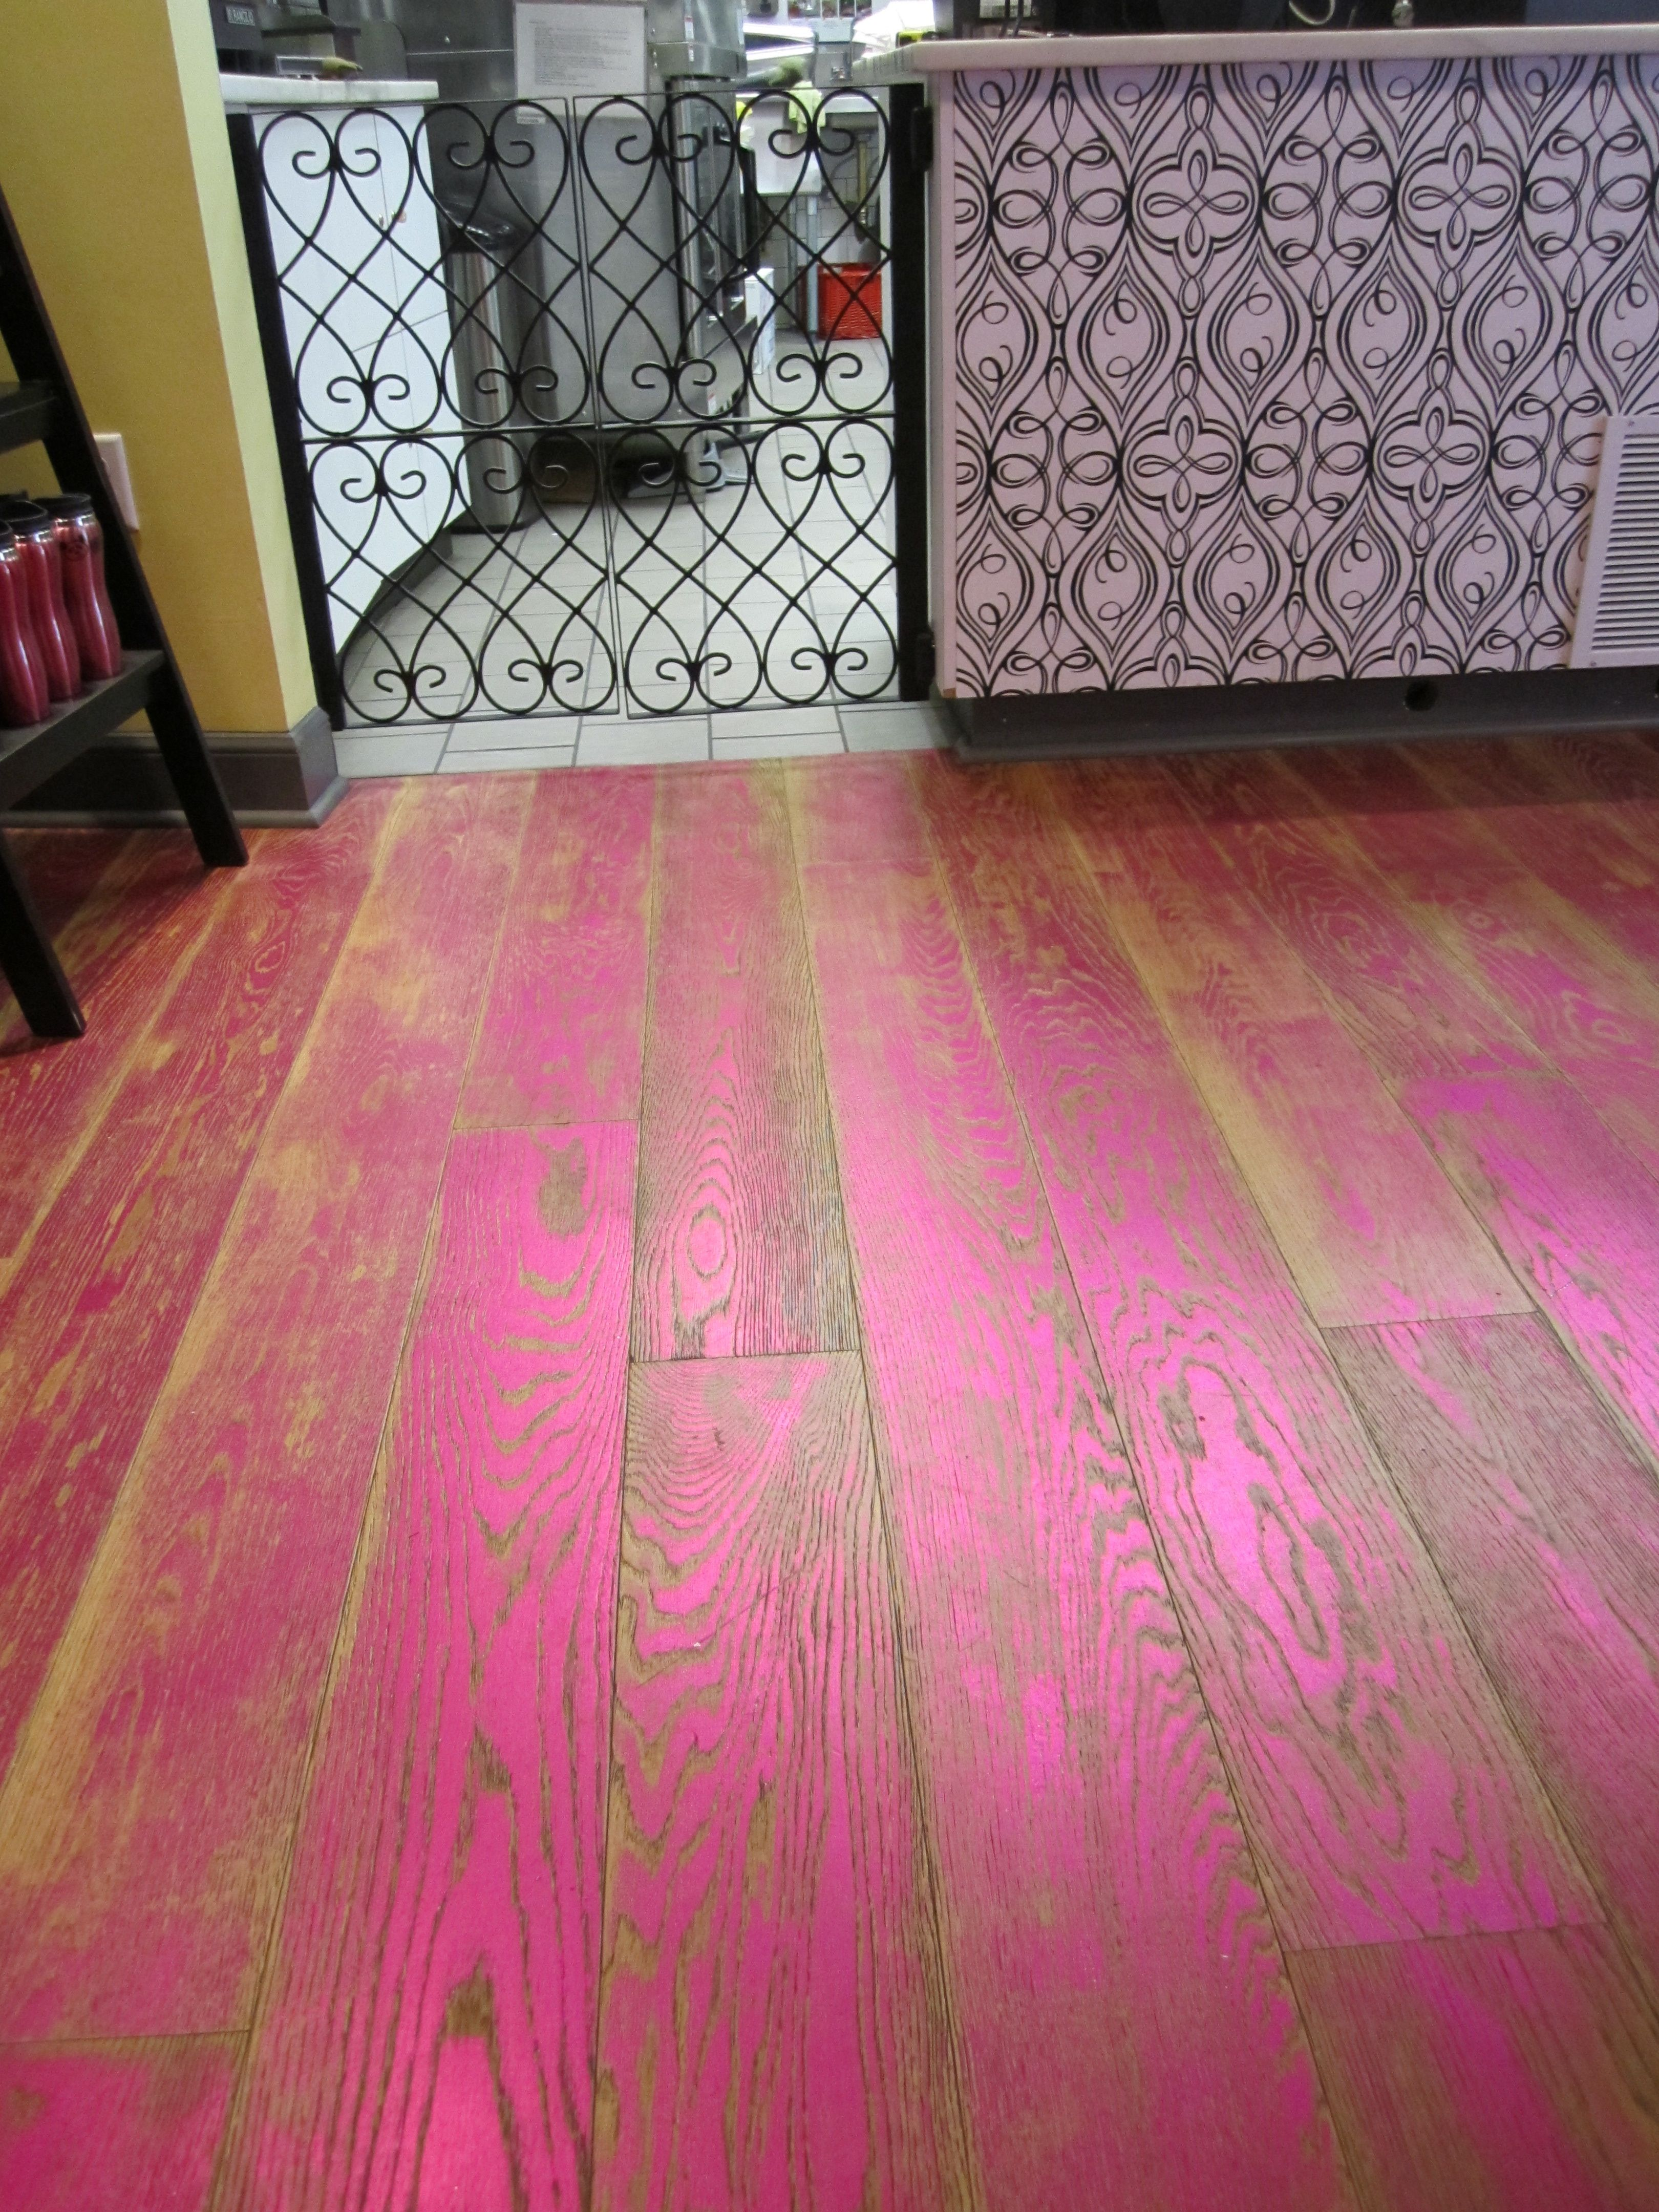 Metallic Pink Distressed Floor In Cakeology In Boston Ma